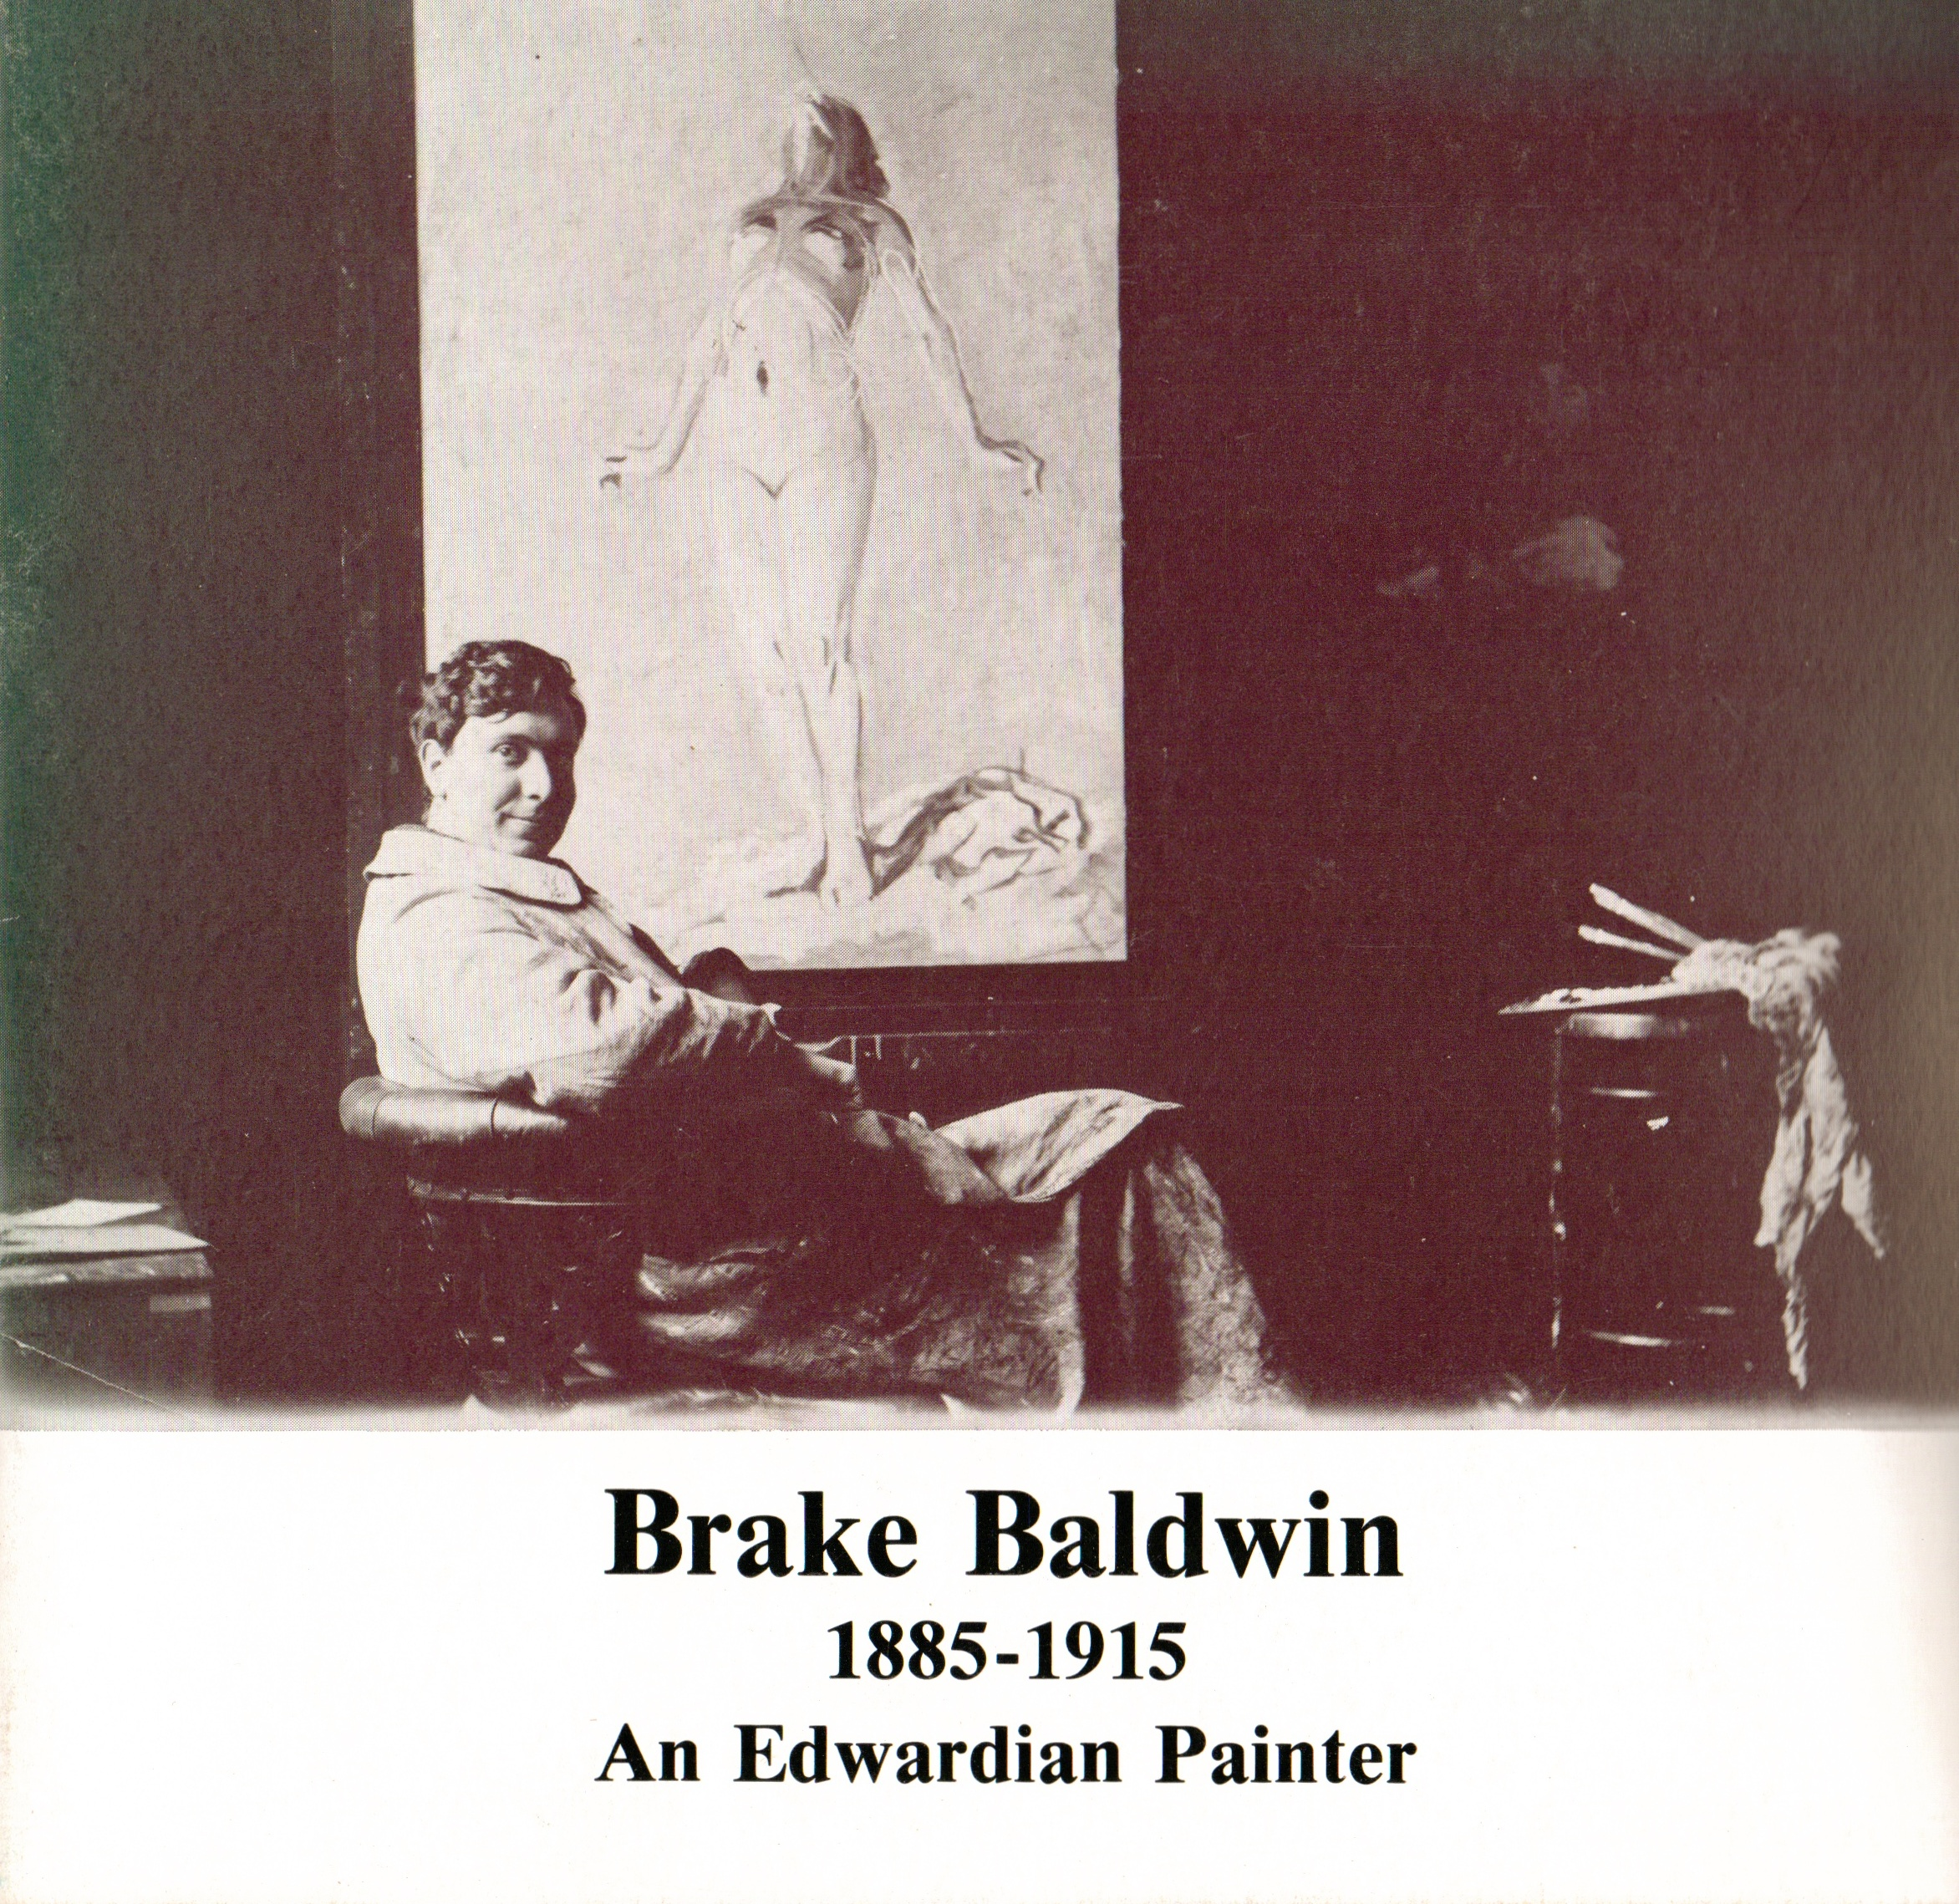 Brake Baldwin 1885-1915